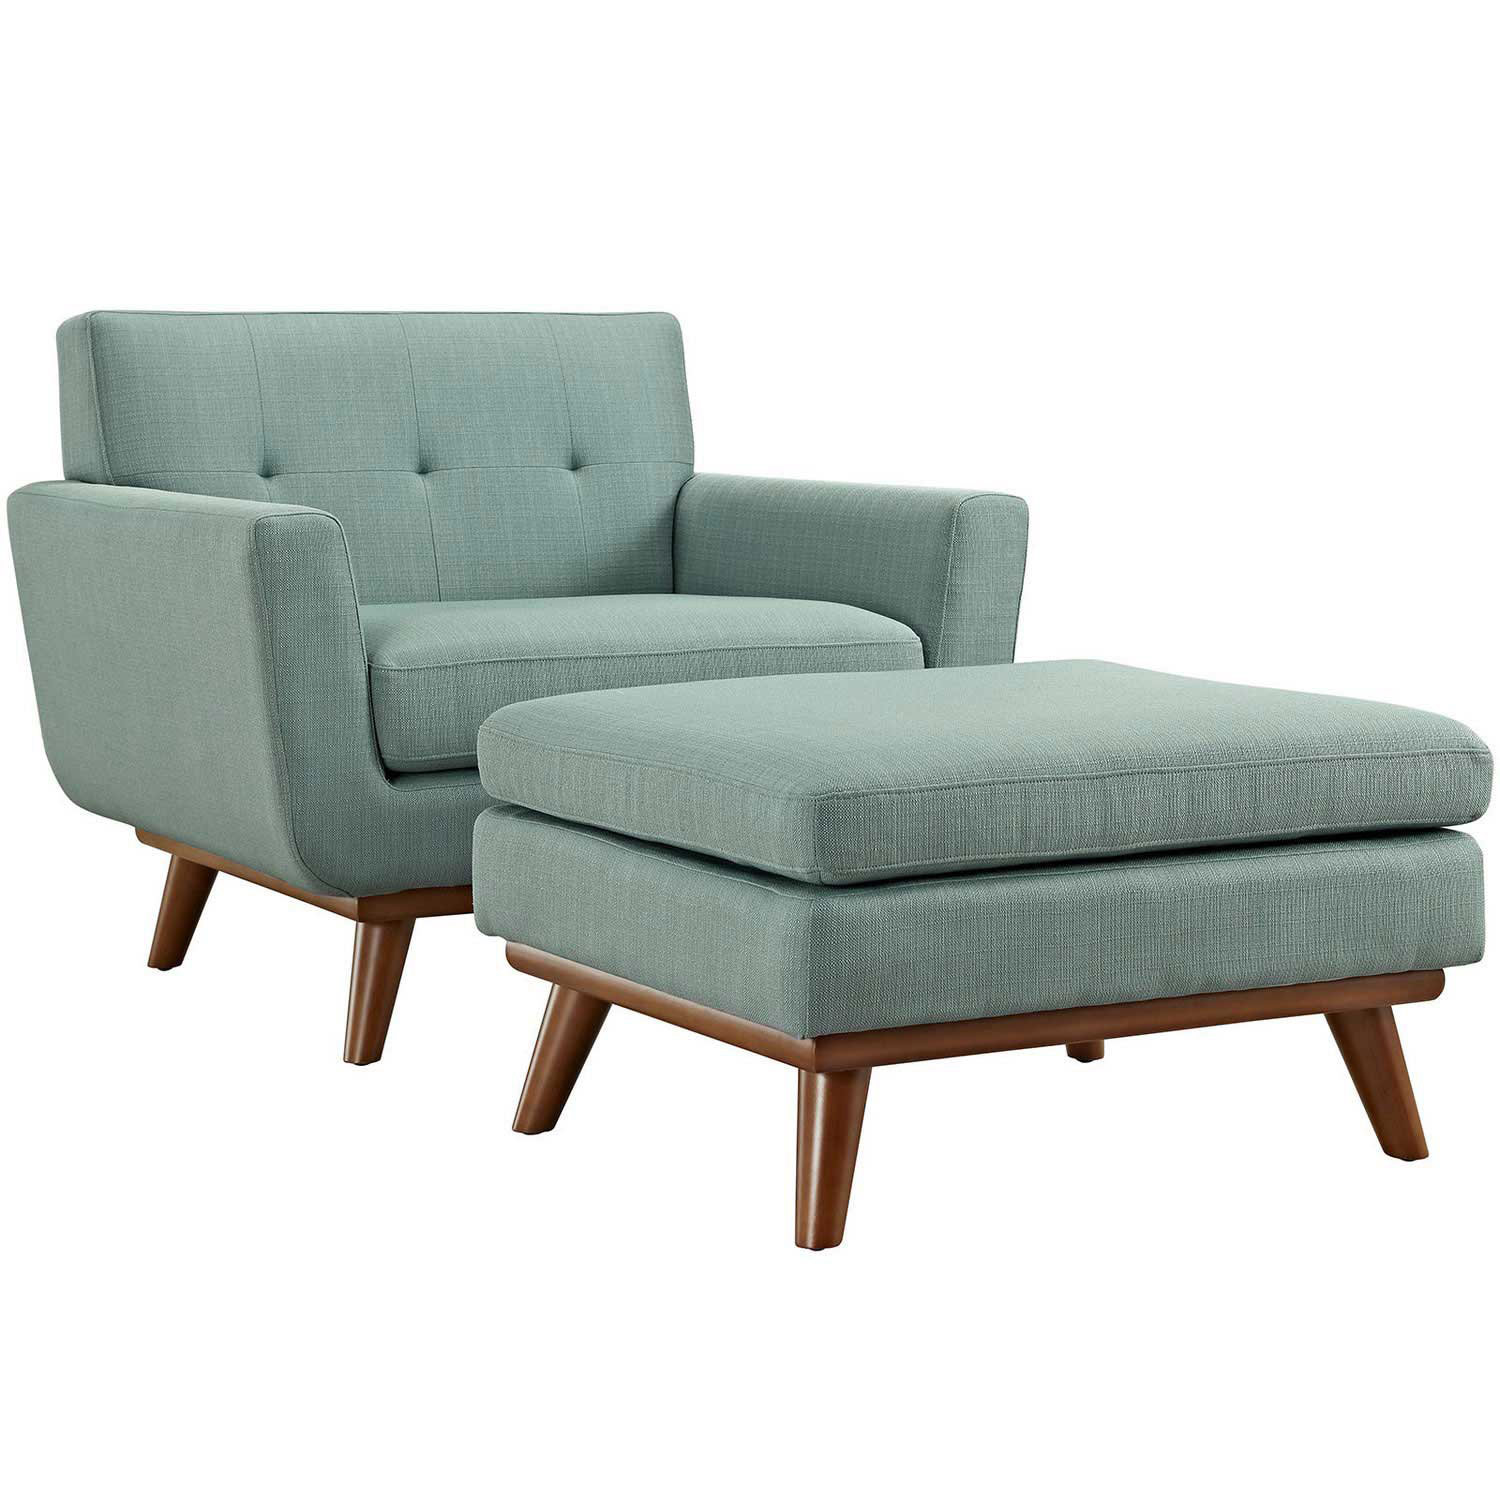 Modway Engage 2 Piece Chair and Ottoman - Laguna